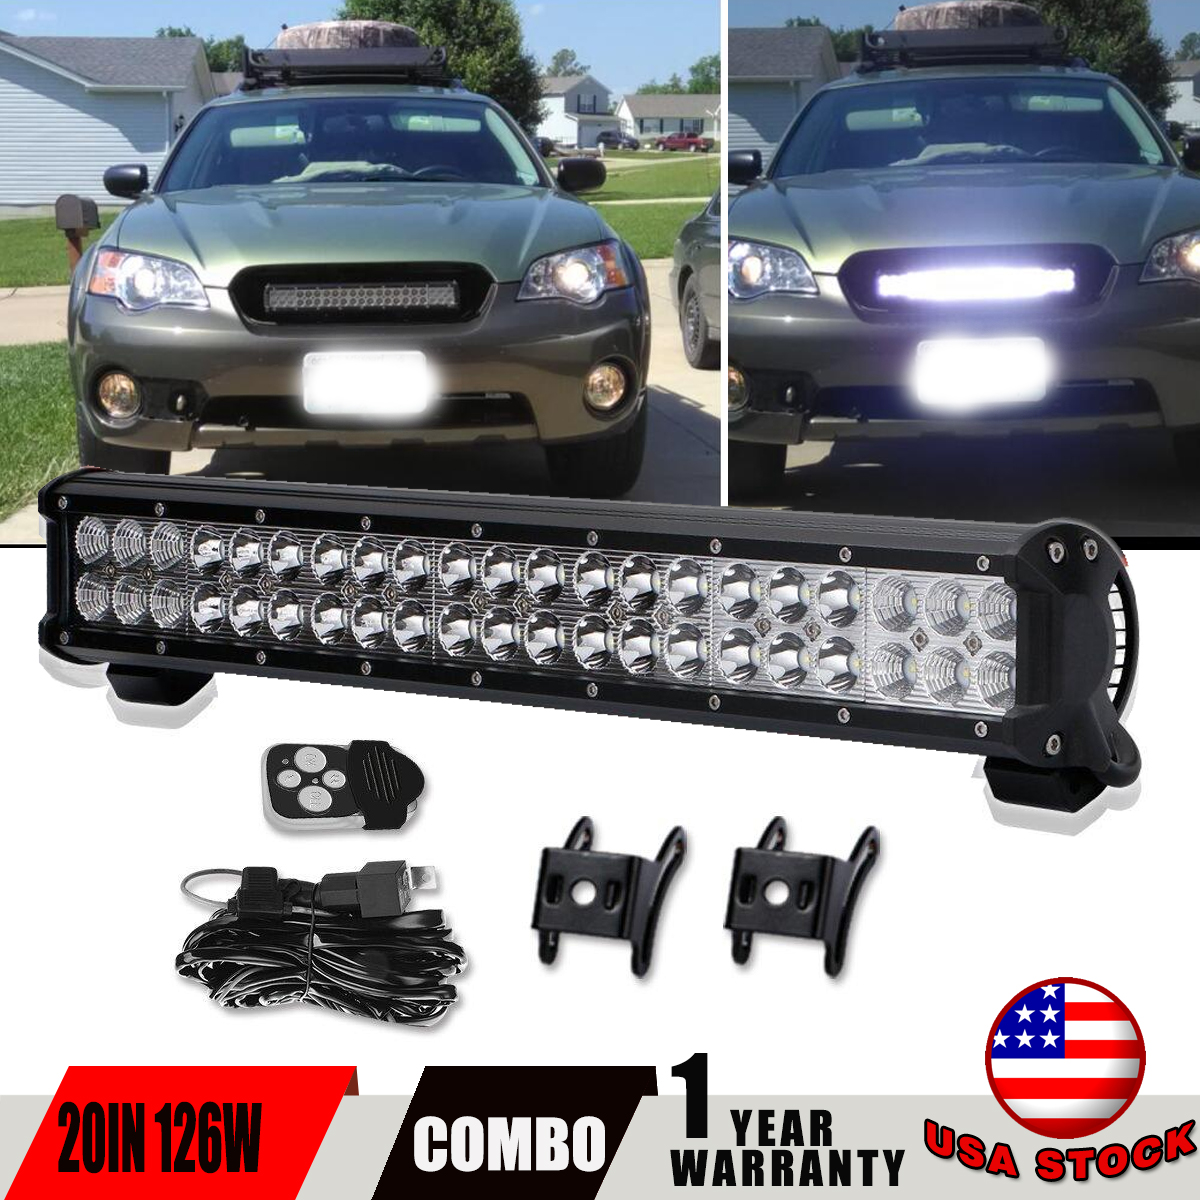 20in Led Light Bar On Front Rear Bumper Wiring Kit For Jeep Polaris 1937 Ford Harness Ranger Gmc